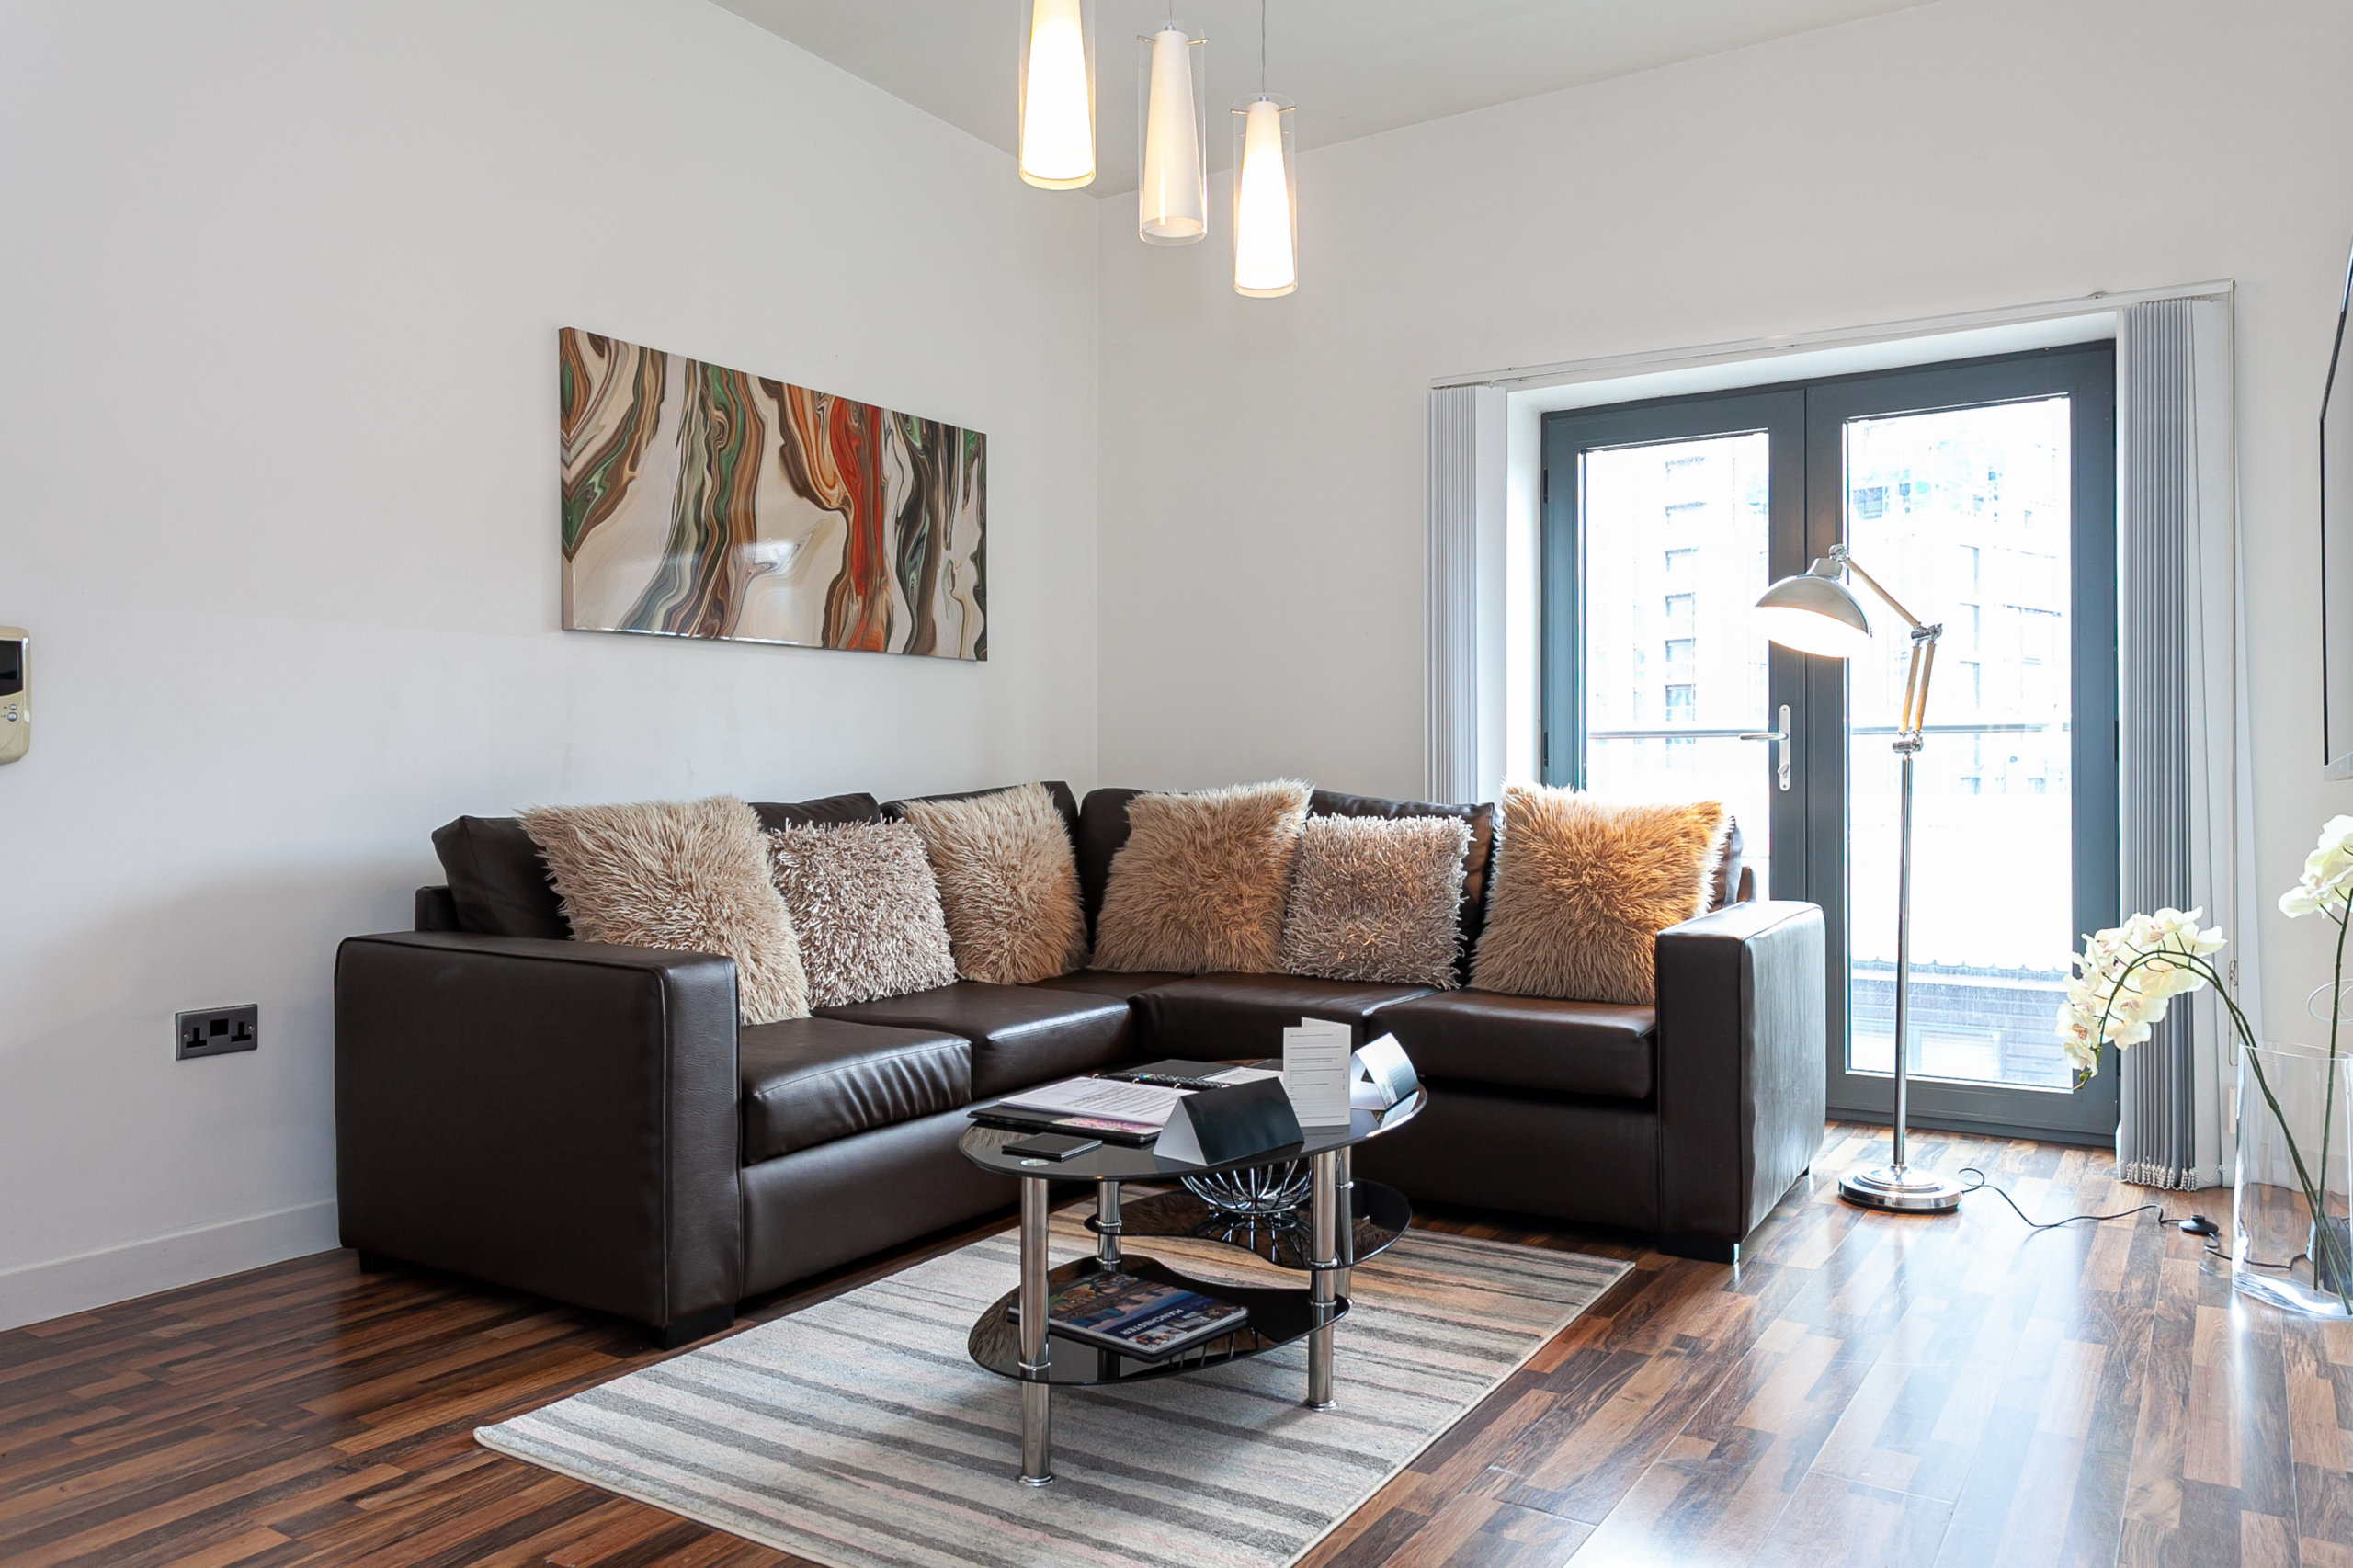 City West Serviced Apartments in Manchester by Dreamhouse